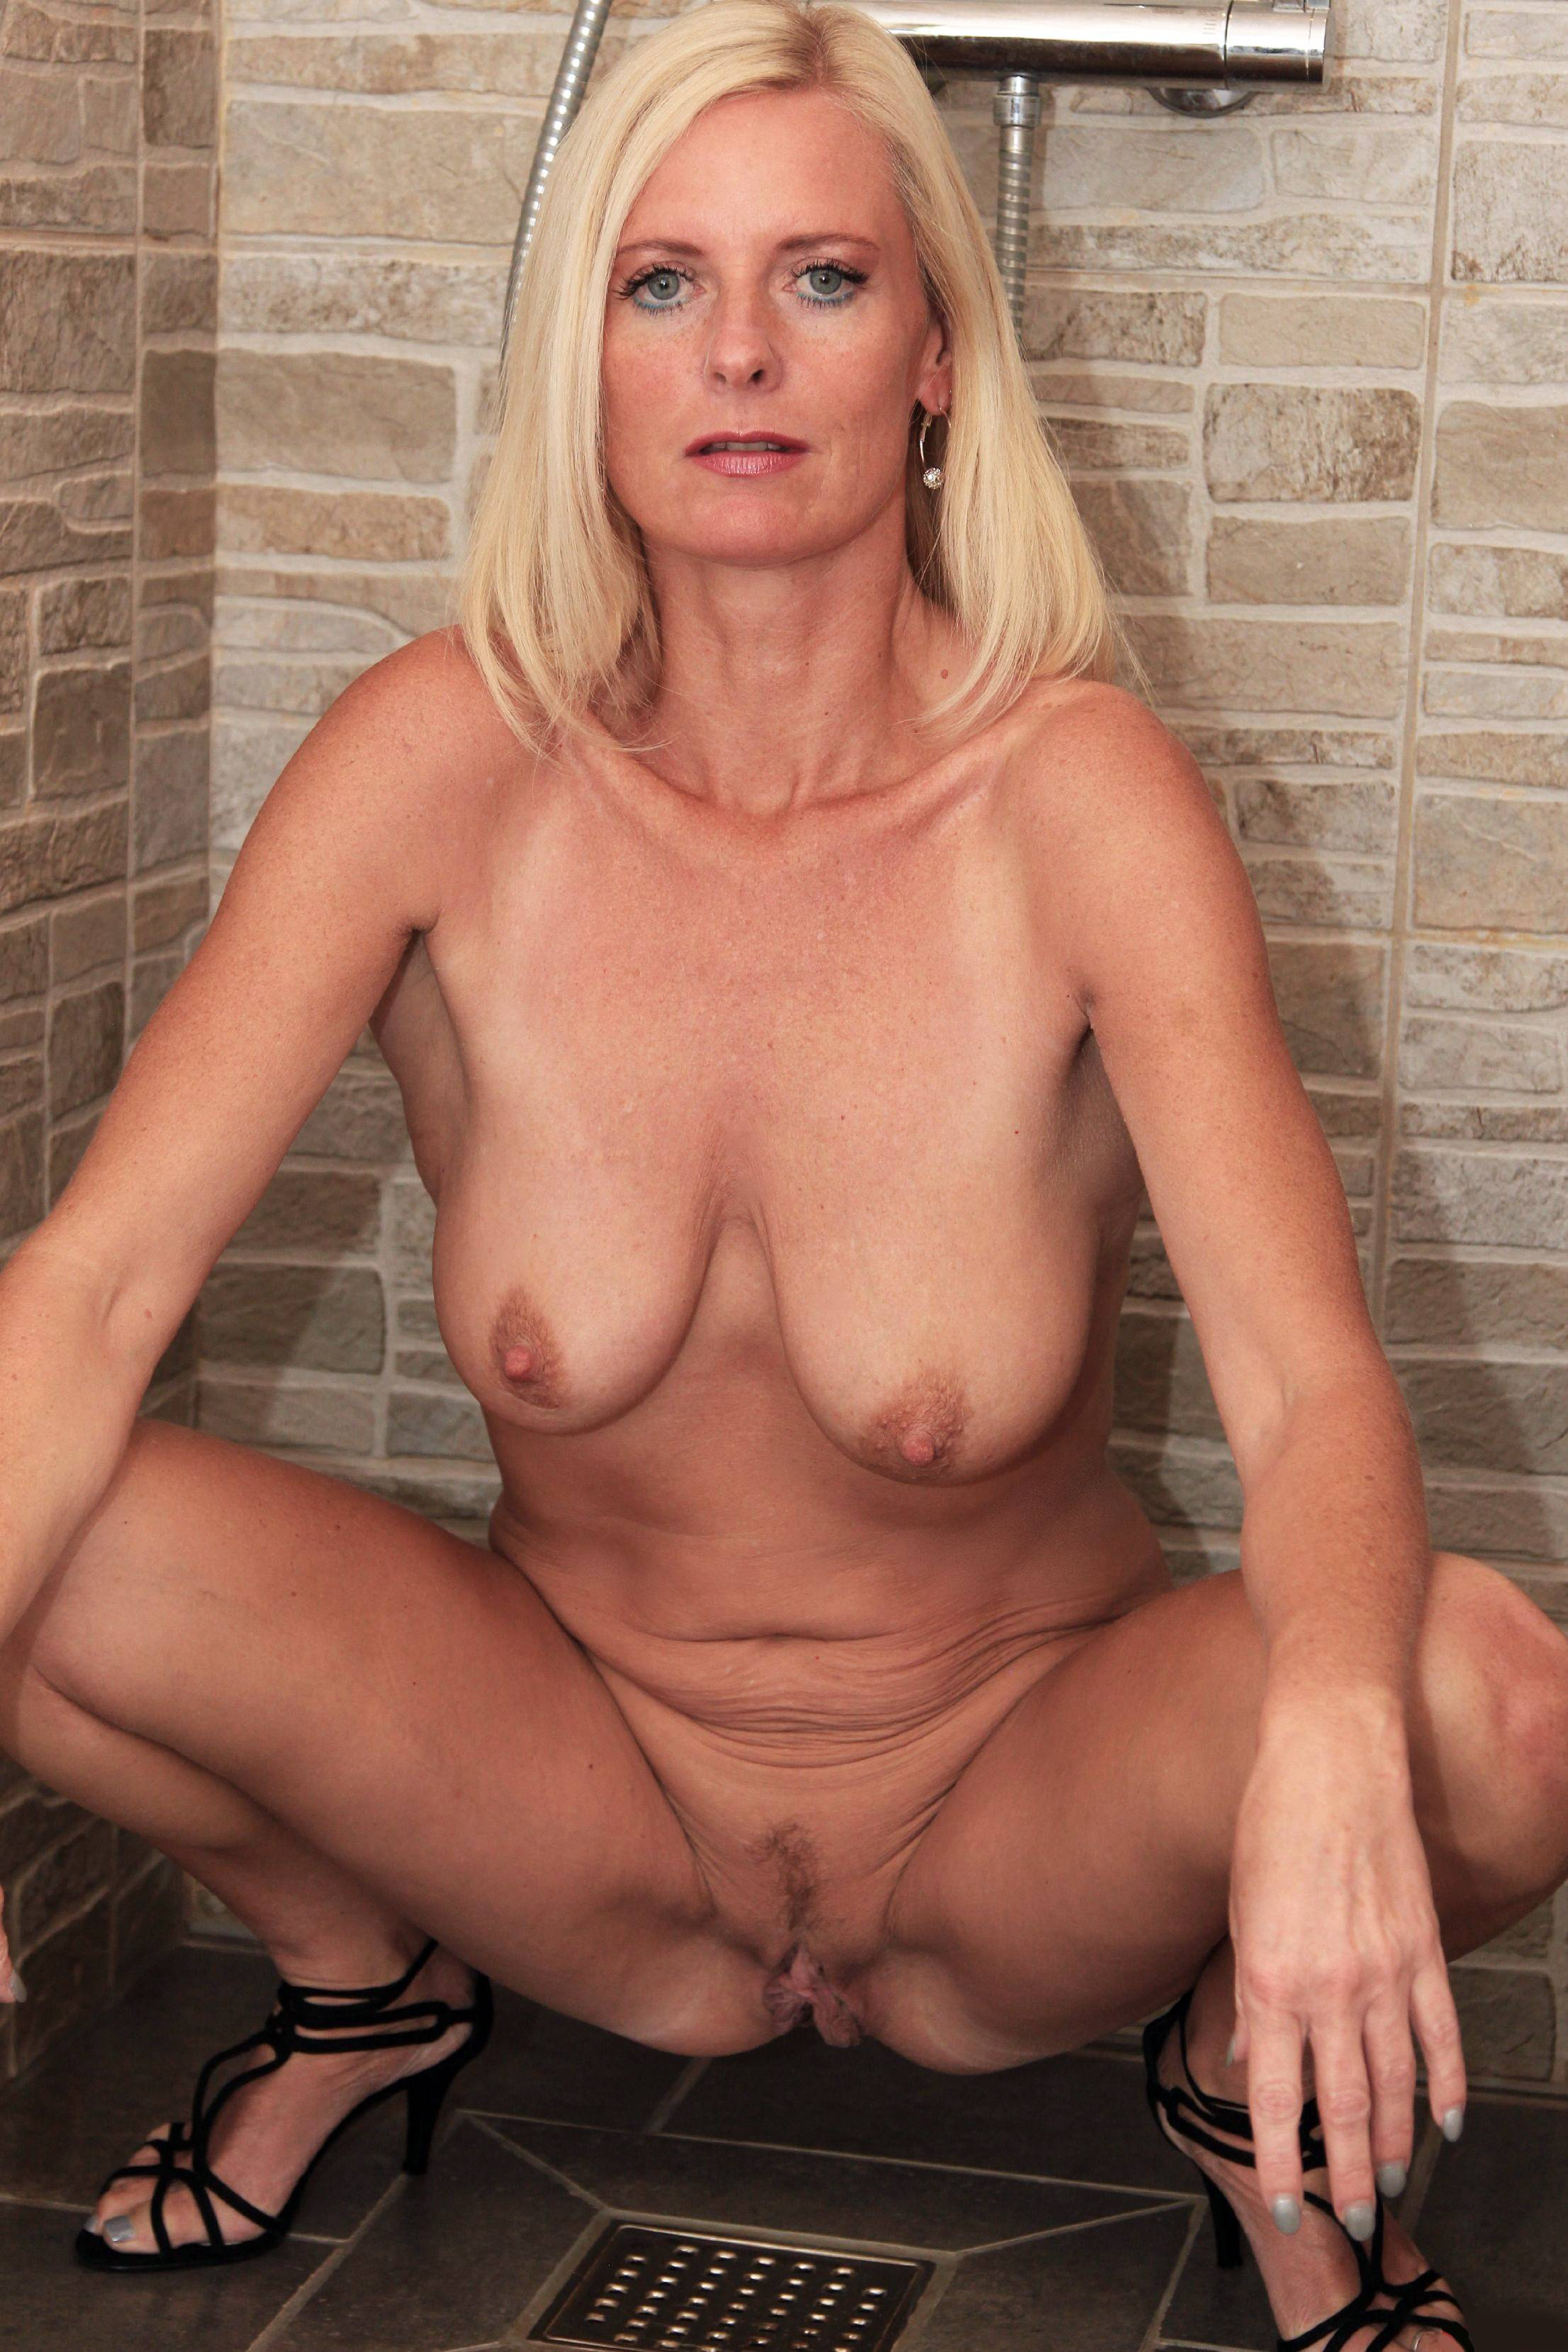 nude pics of girl gymest